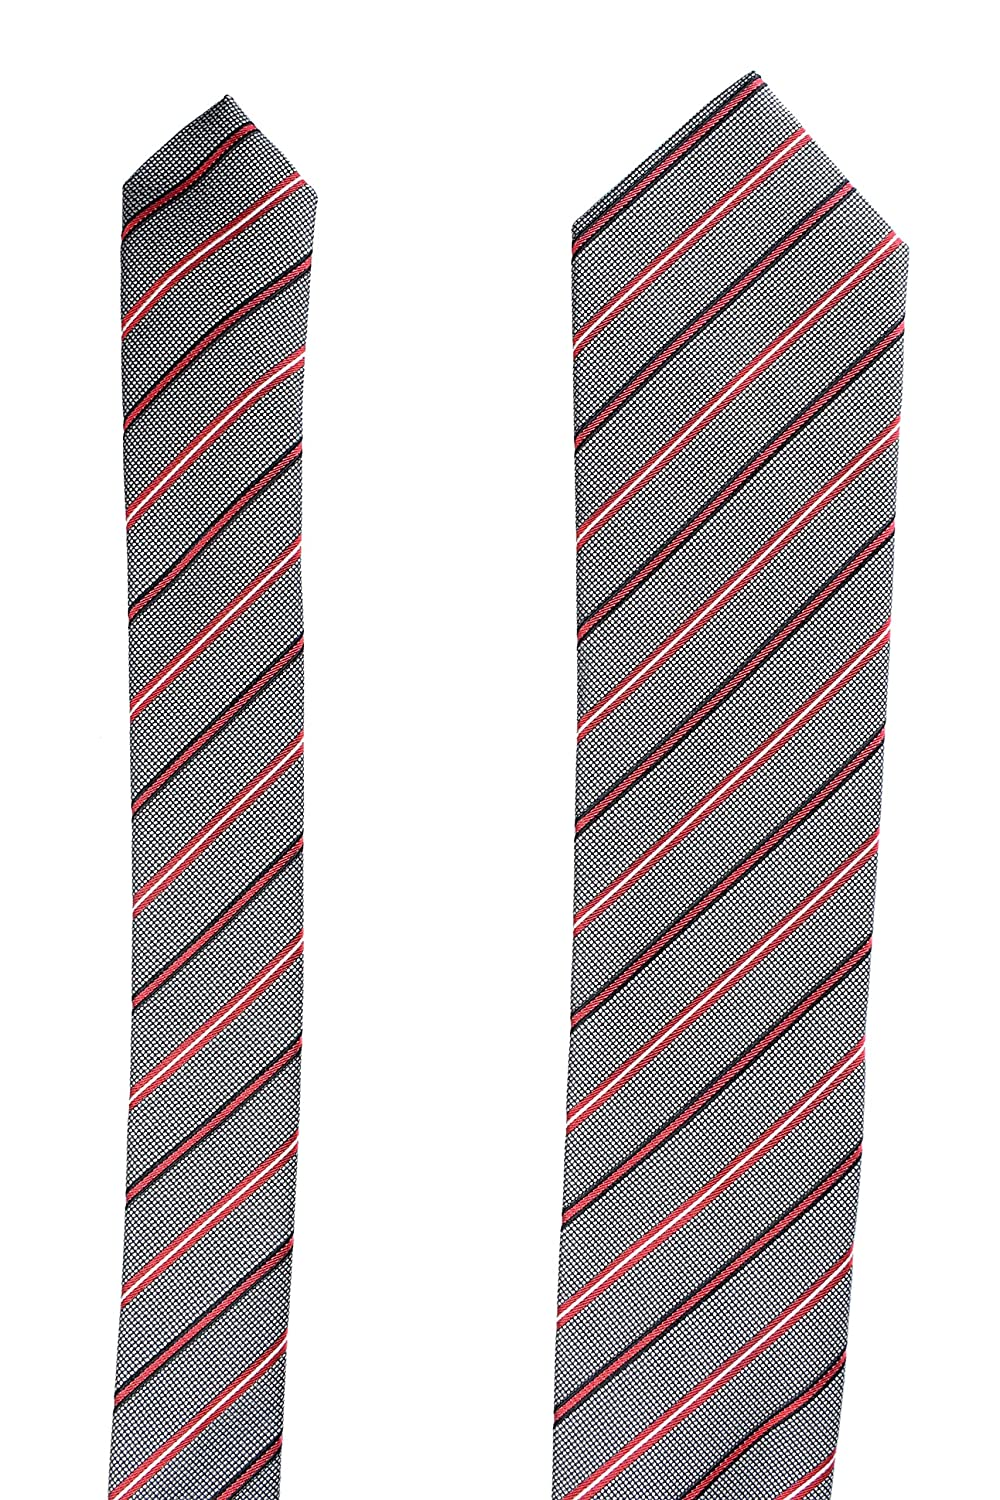 Hugo Boss Mens Multi-Color Striped 100/% Silk Tie